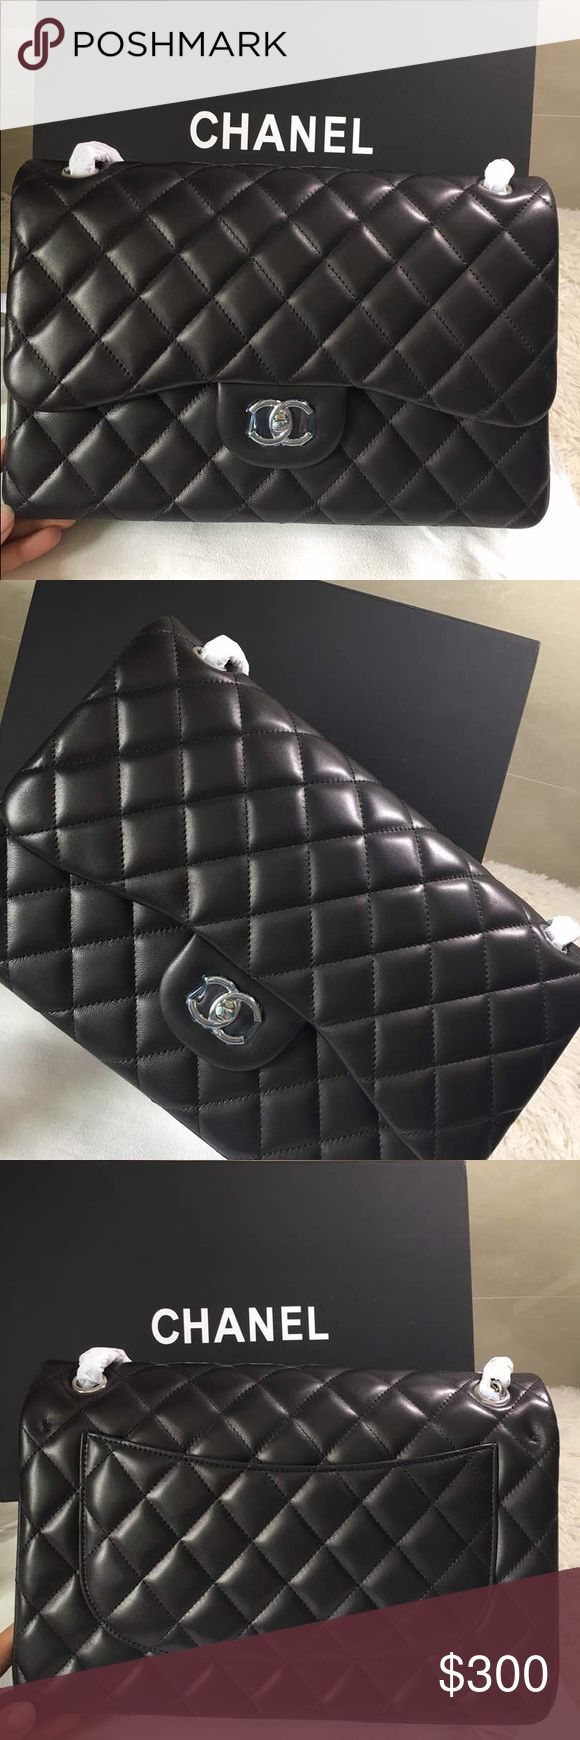 Chanel jumbo flap BRAND NEW  COMES WITH BOX DUST BAG AND AUTHENTICITY CARD  NOT AUTHENTIIIIIIIIC  REAL LEATHER  NOT SOLD THRU PM  ONLY SOLD WITH G.W. OR ZELLE FOR PURCHASE OR SERIOUS INQUIRIES  CONTACT ME  luxurybaggal202@gmail.com CHANEL Bags